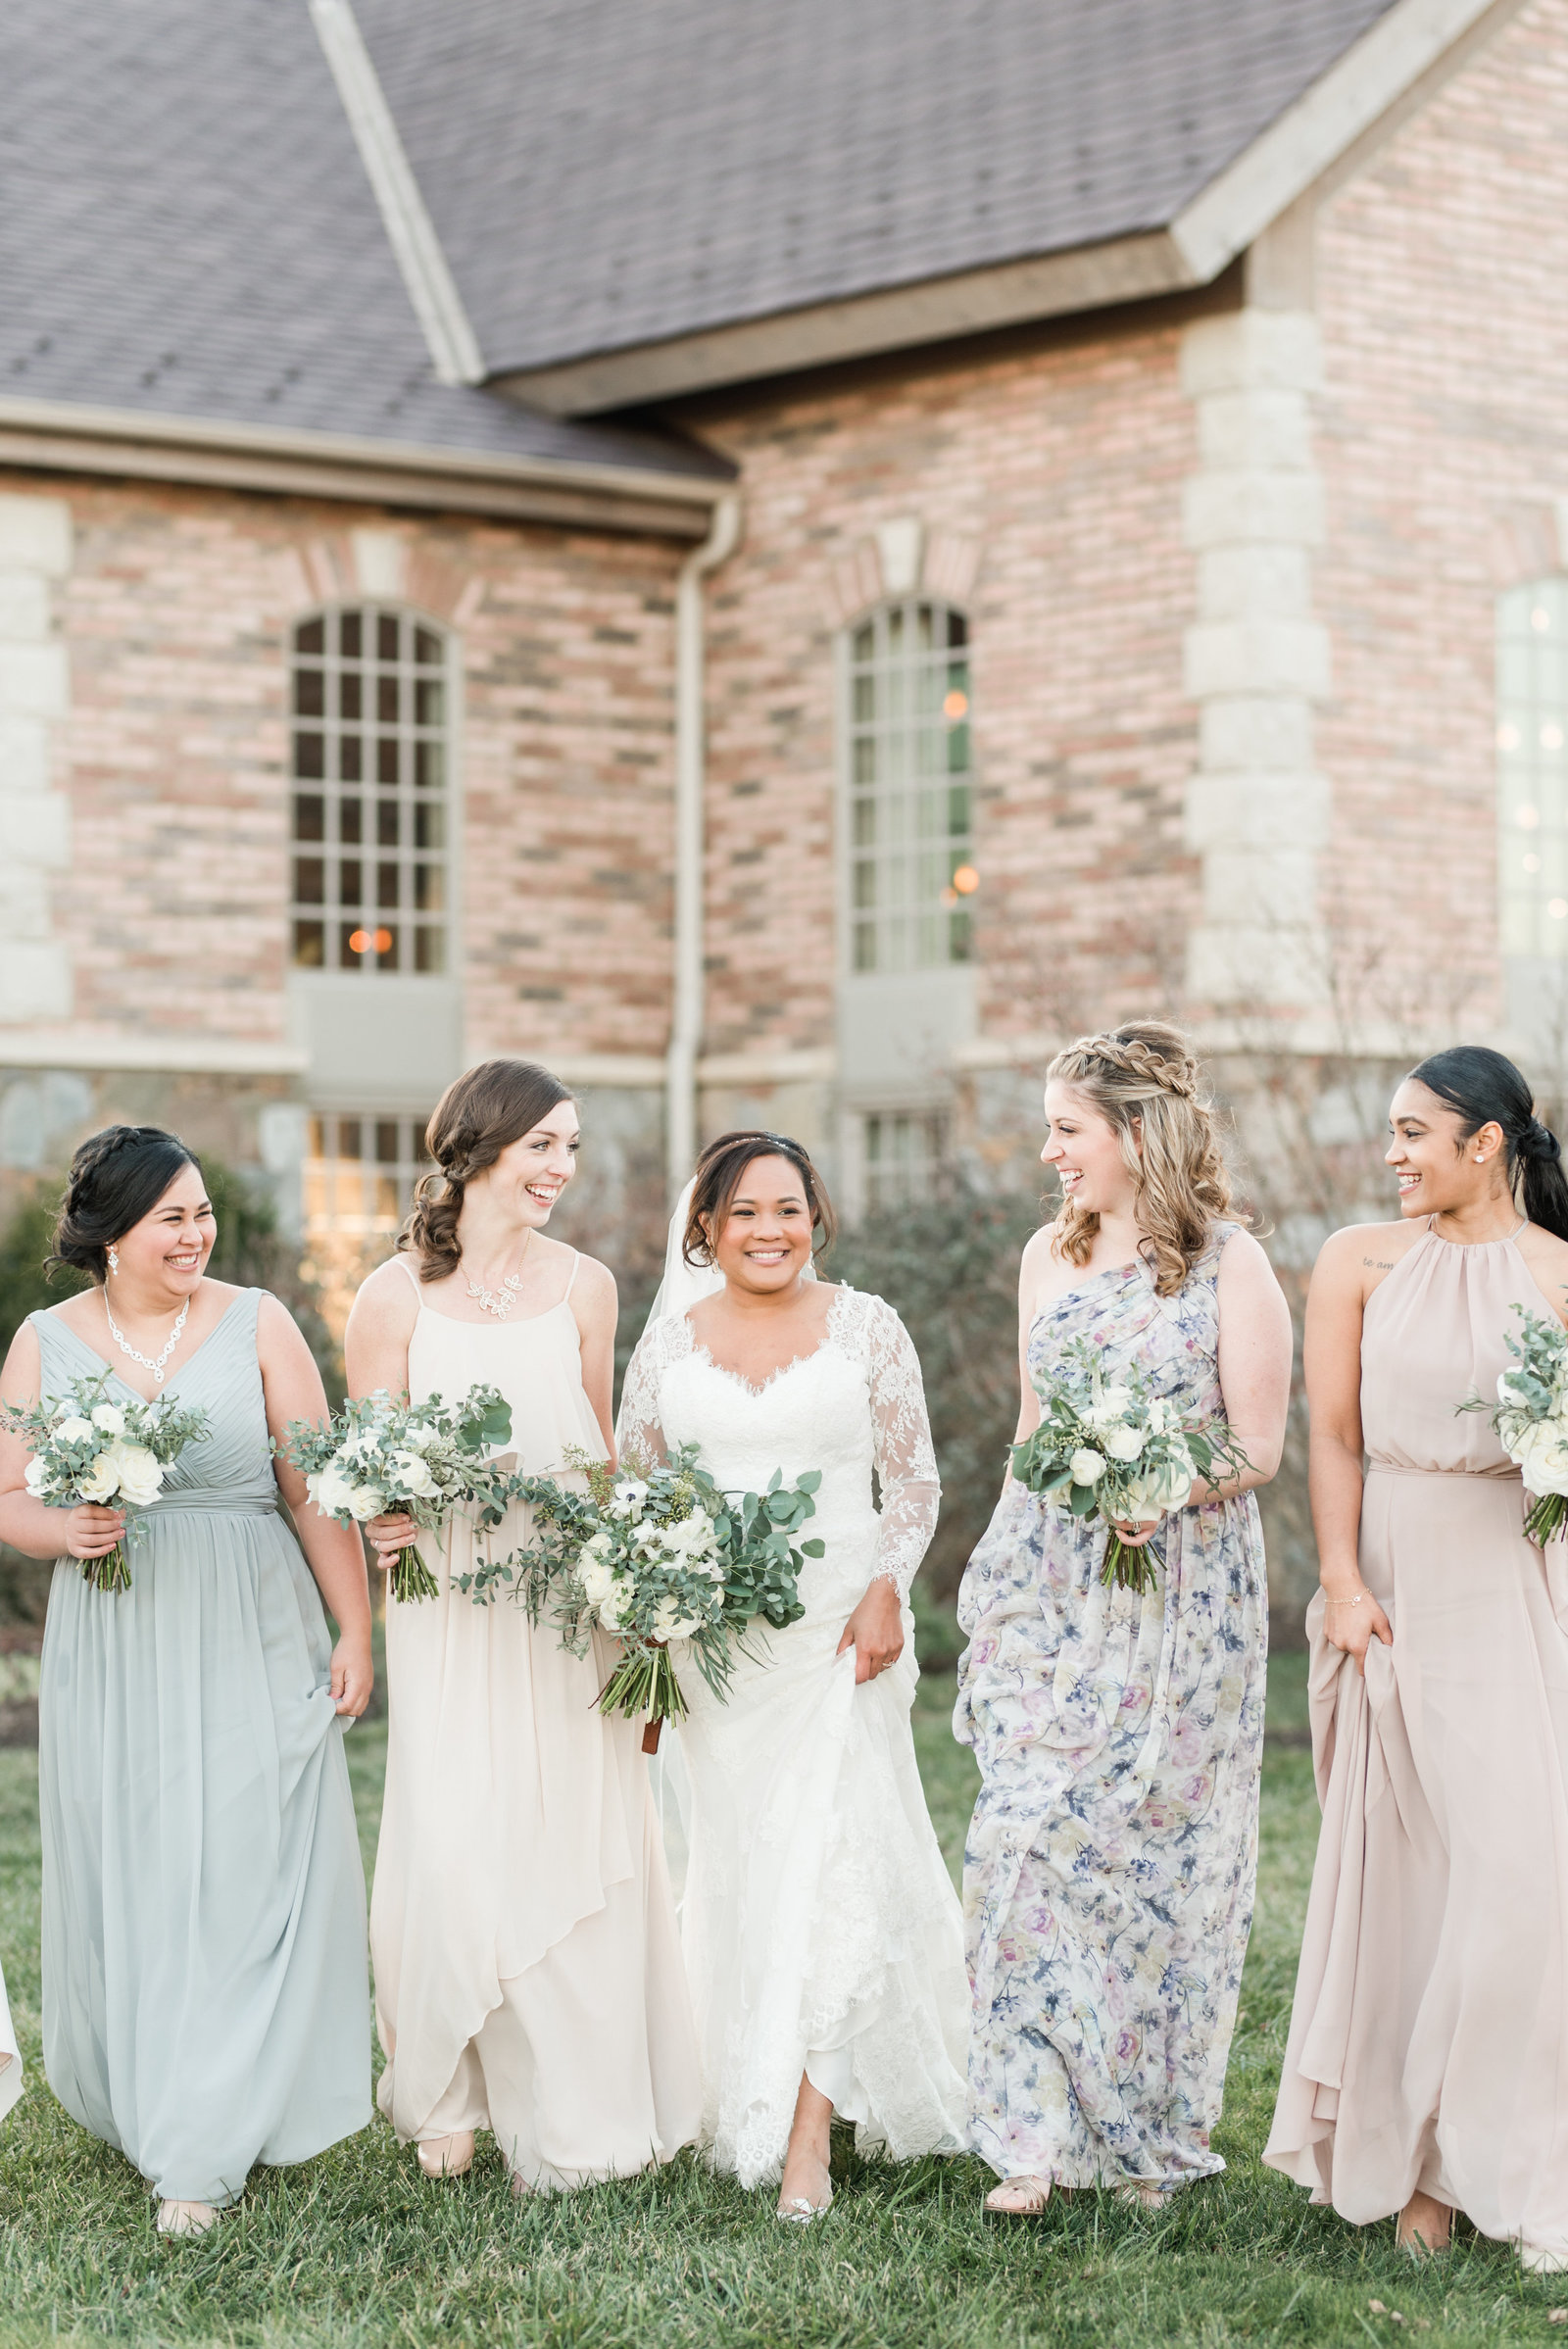 charlottesville-va-wedding-pastel-bridesmaids-dresses-by-virginia-hampton-roads-photogrpaher-photo811